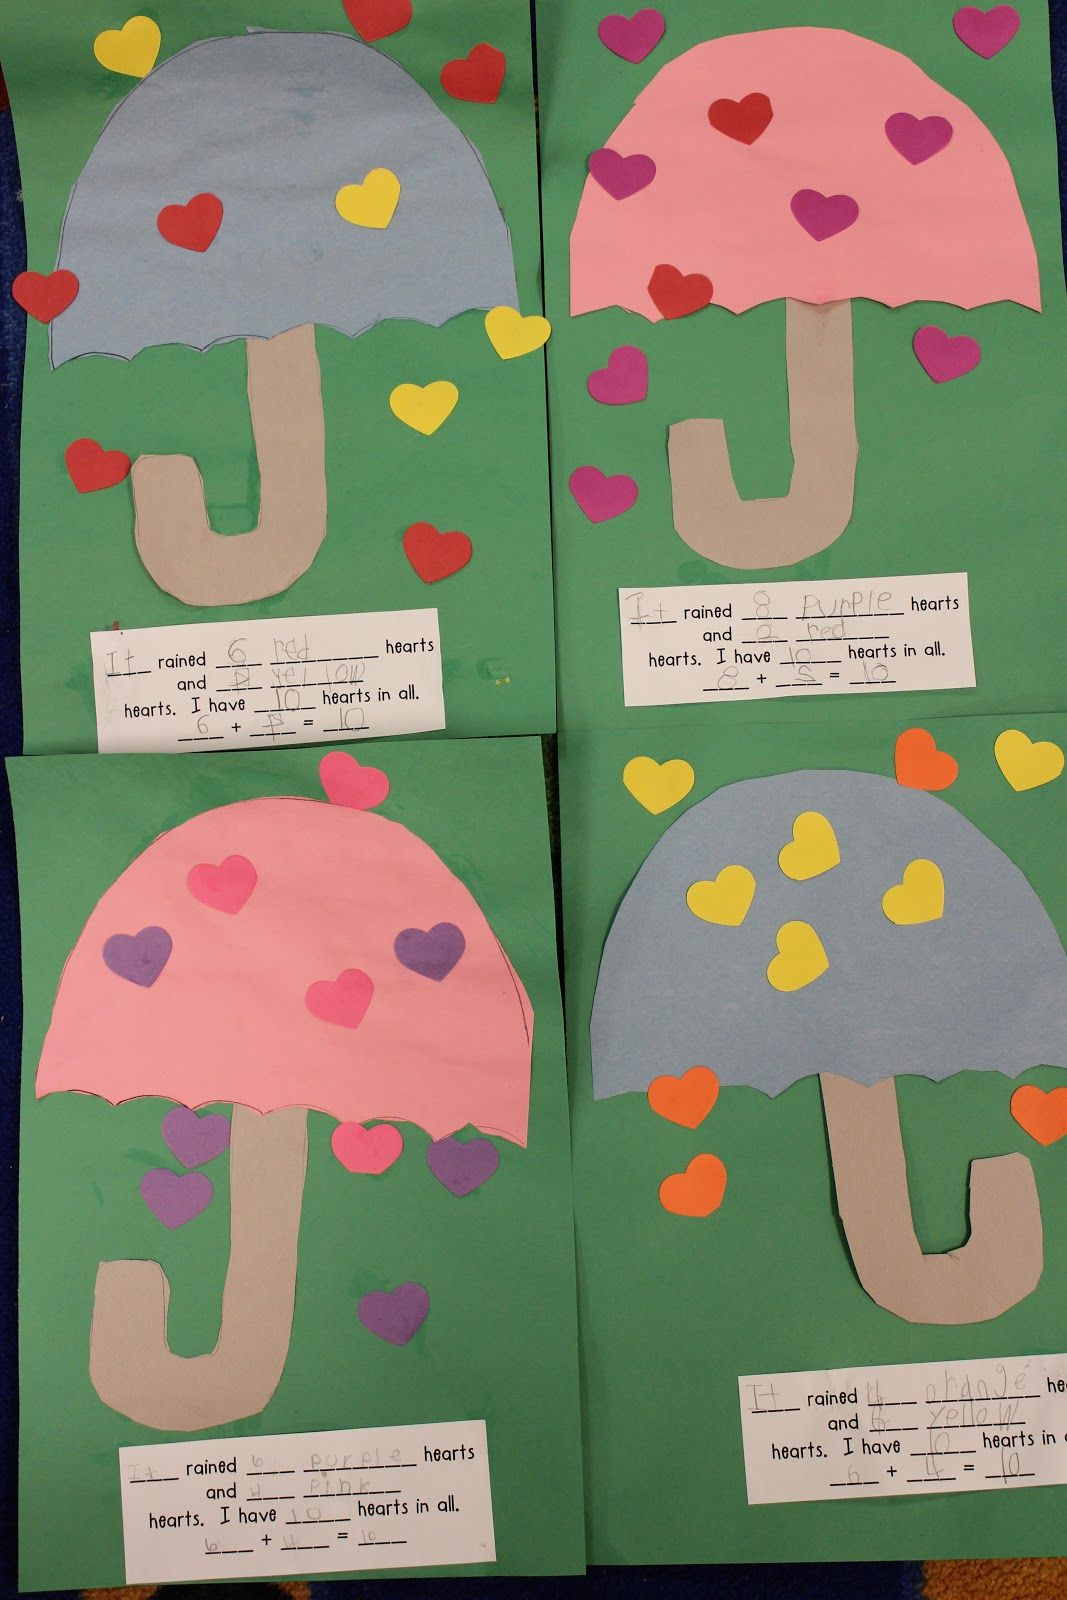 Cute Valentines Addition Activity Could Go With The Book The Day It Rained Hearts